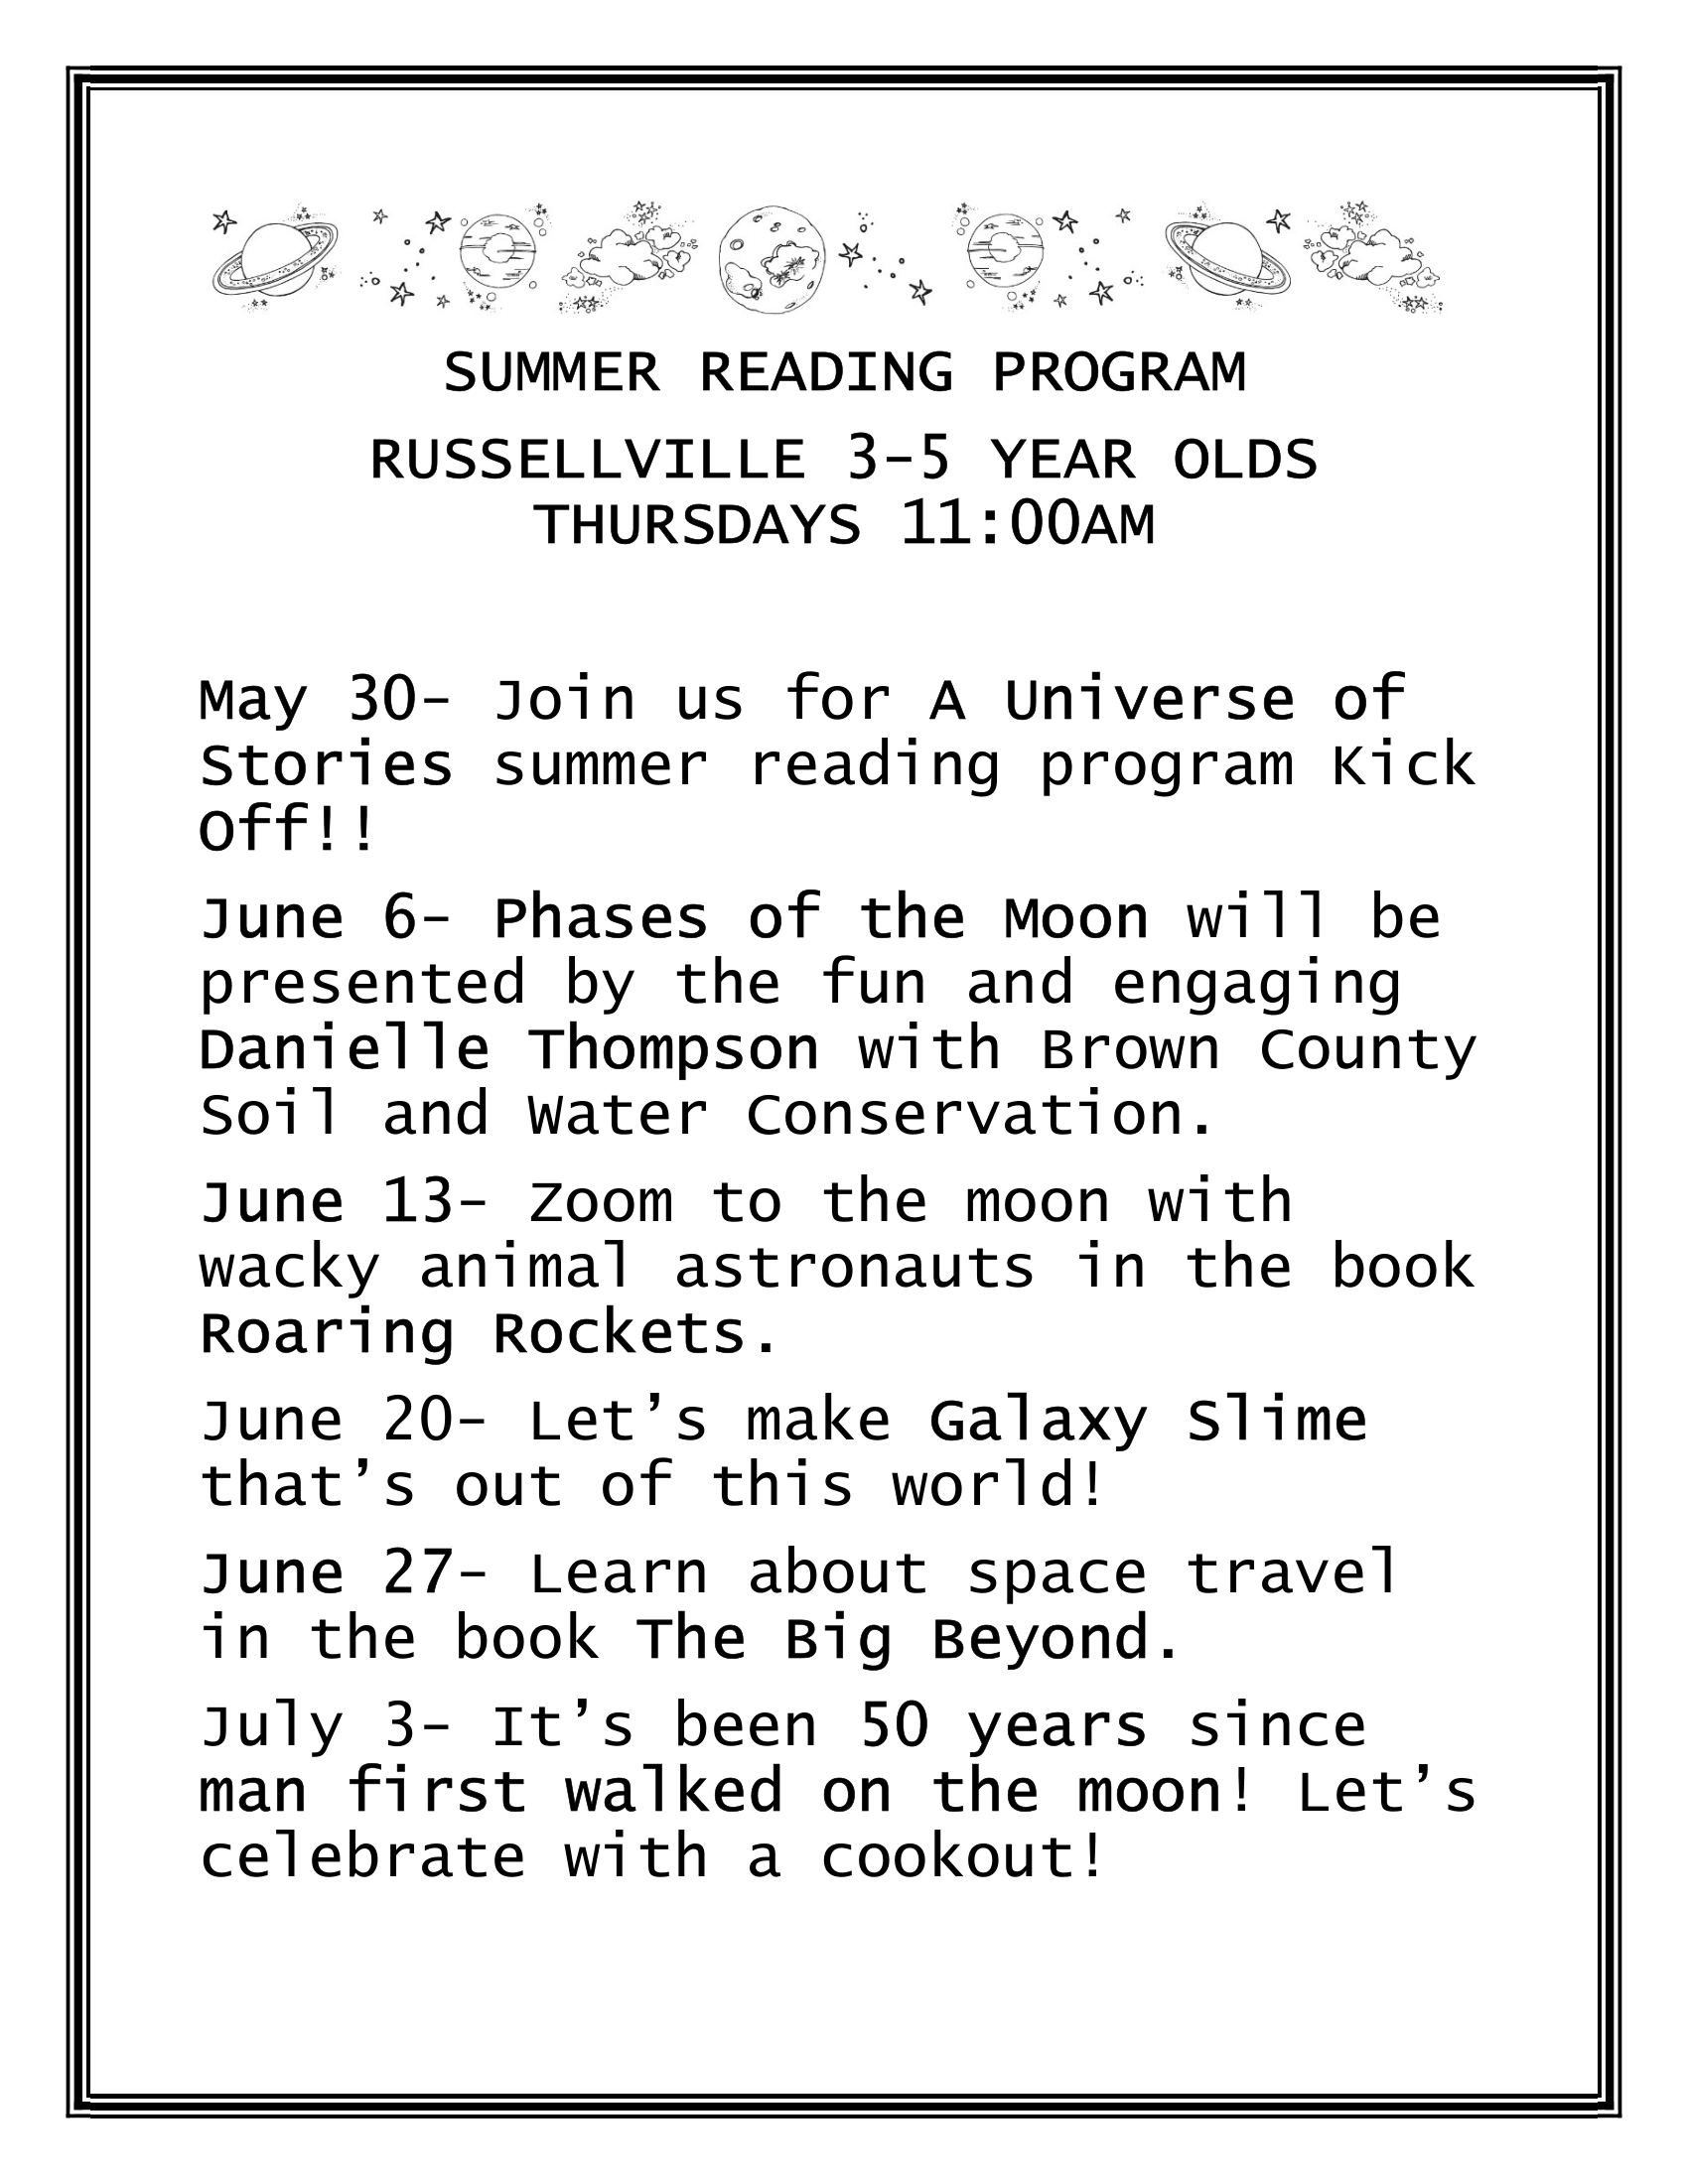 Summer Reading Program (3 to 5 Year Old) - Russellville Branch